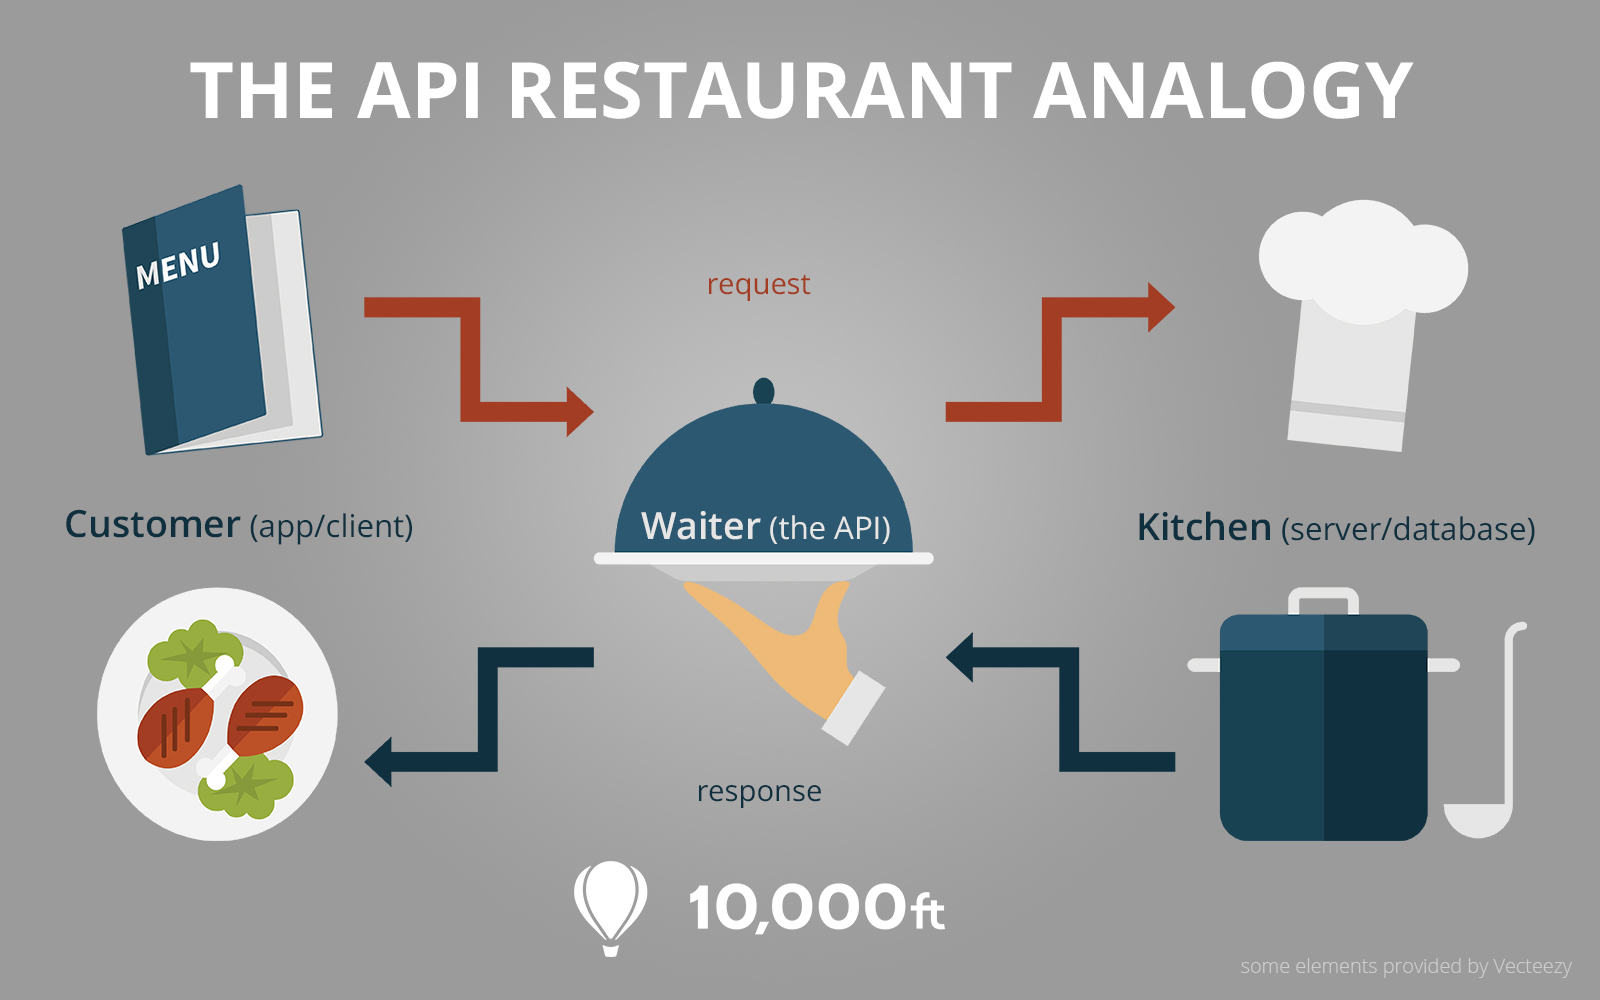 What's Possible with the 10,000ft API | 10,000ft